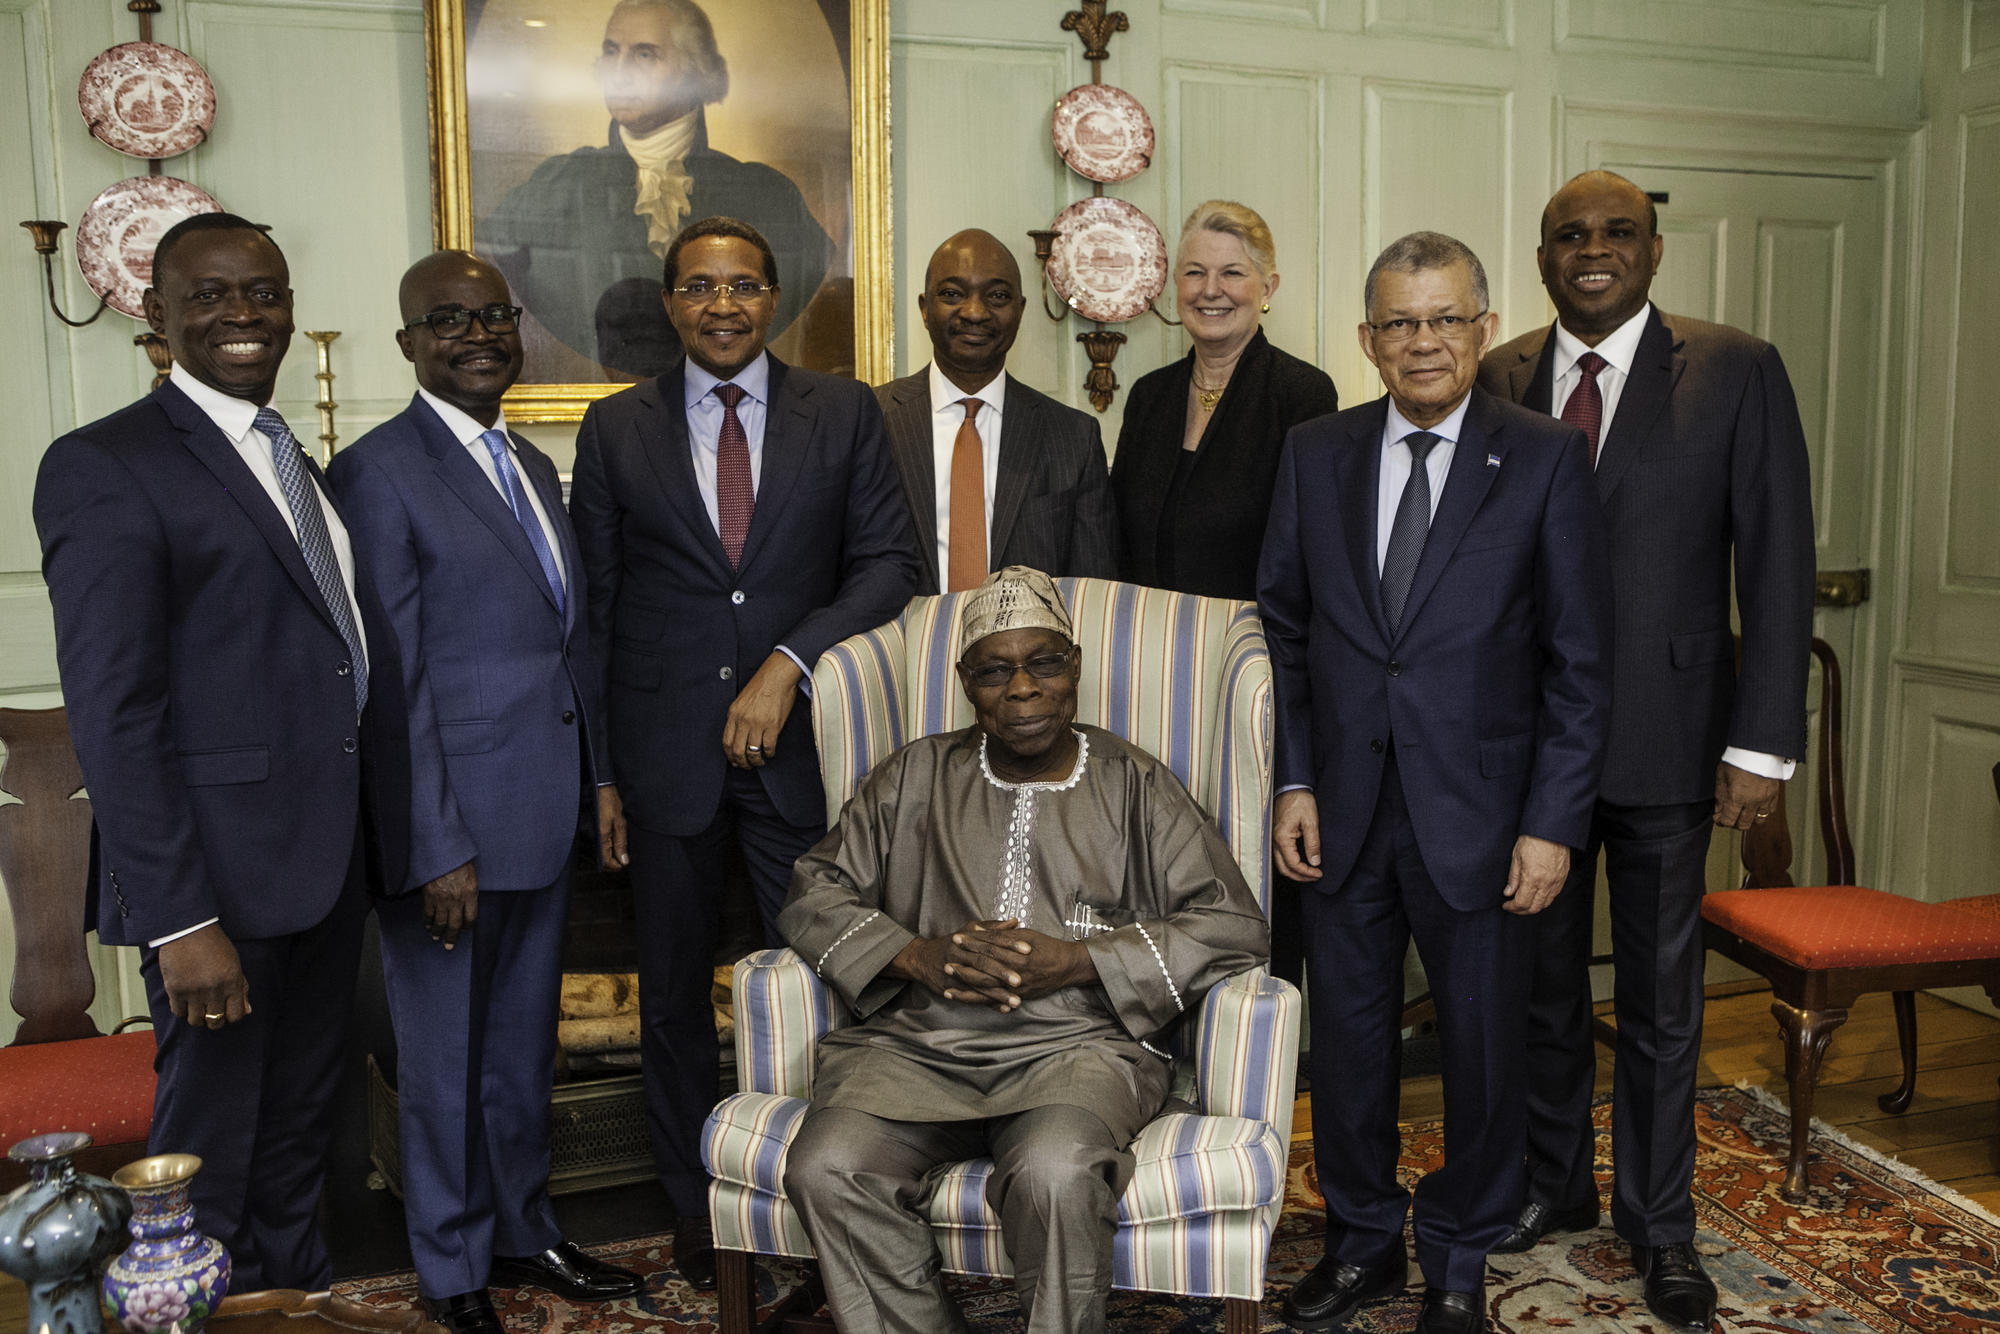 African leaders with Prof. Akyeampong and Dr. Gill in the Wadsworth House parlor